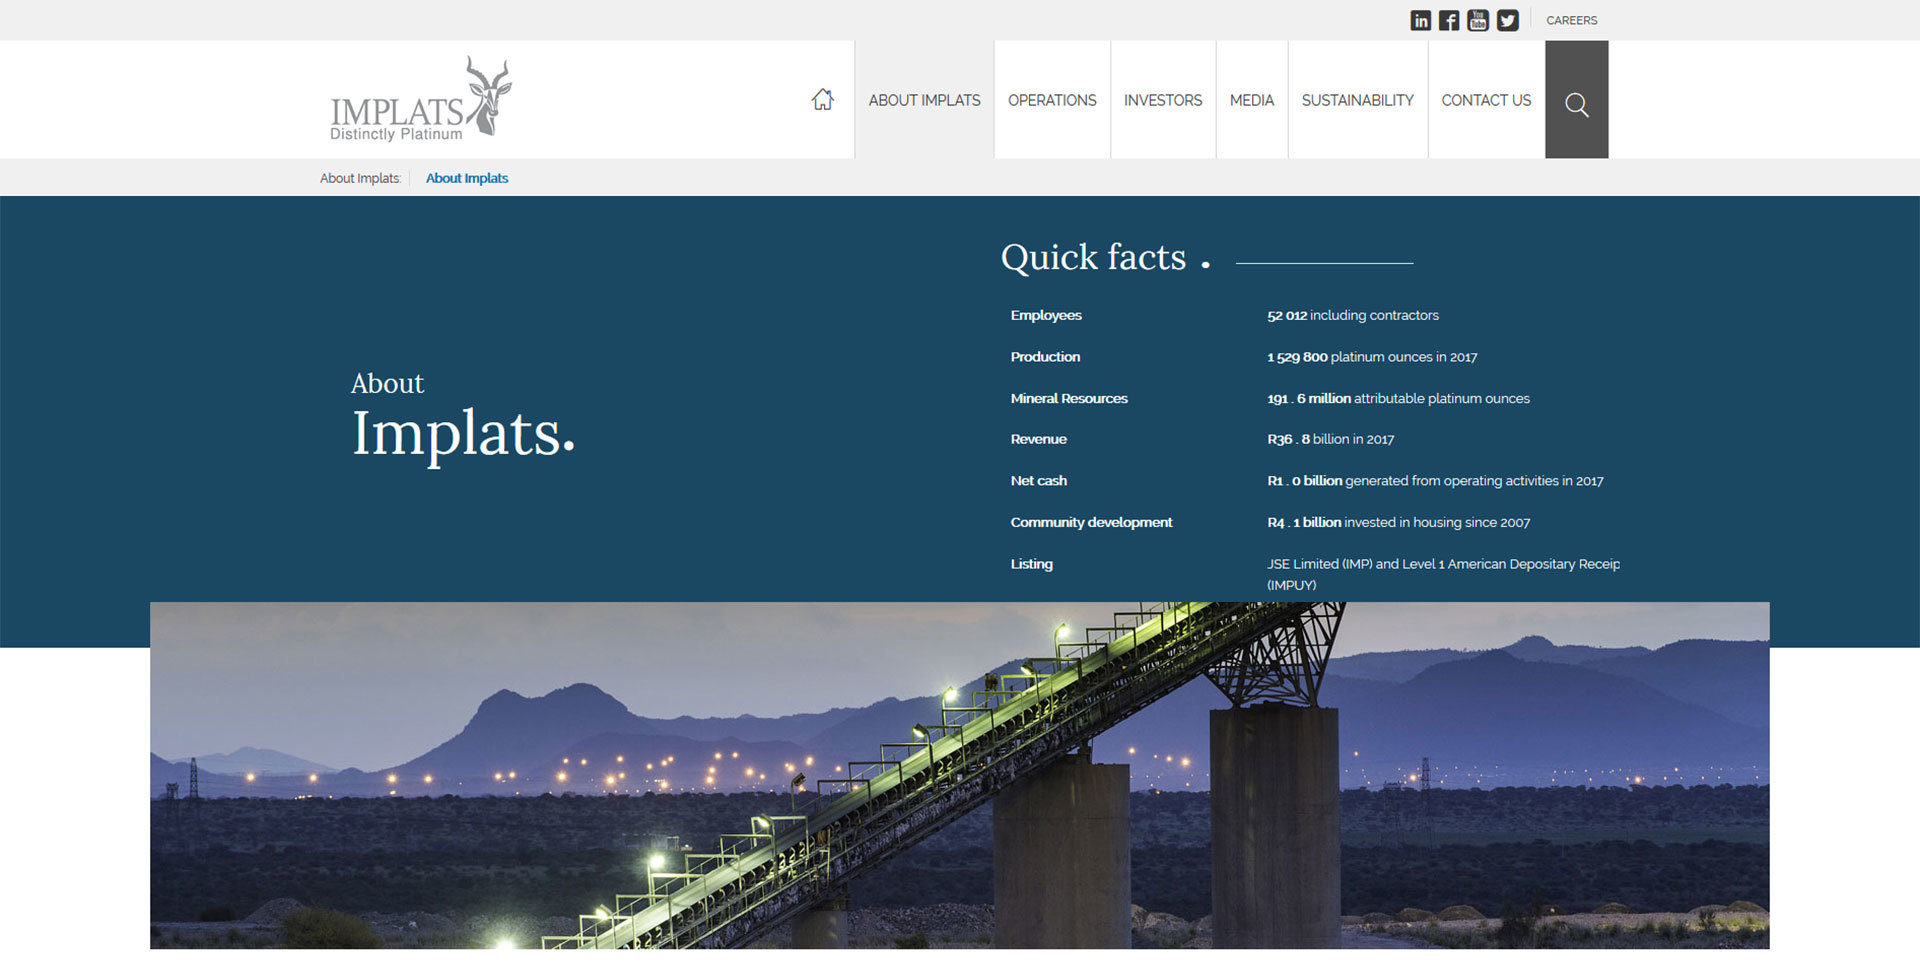 Implats corporate website - about